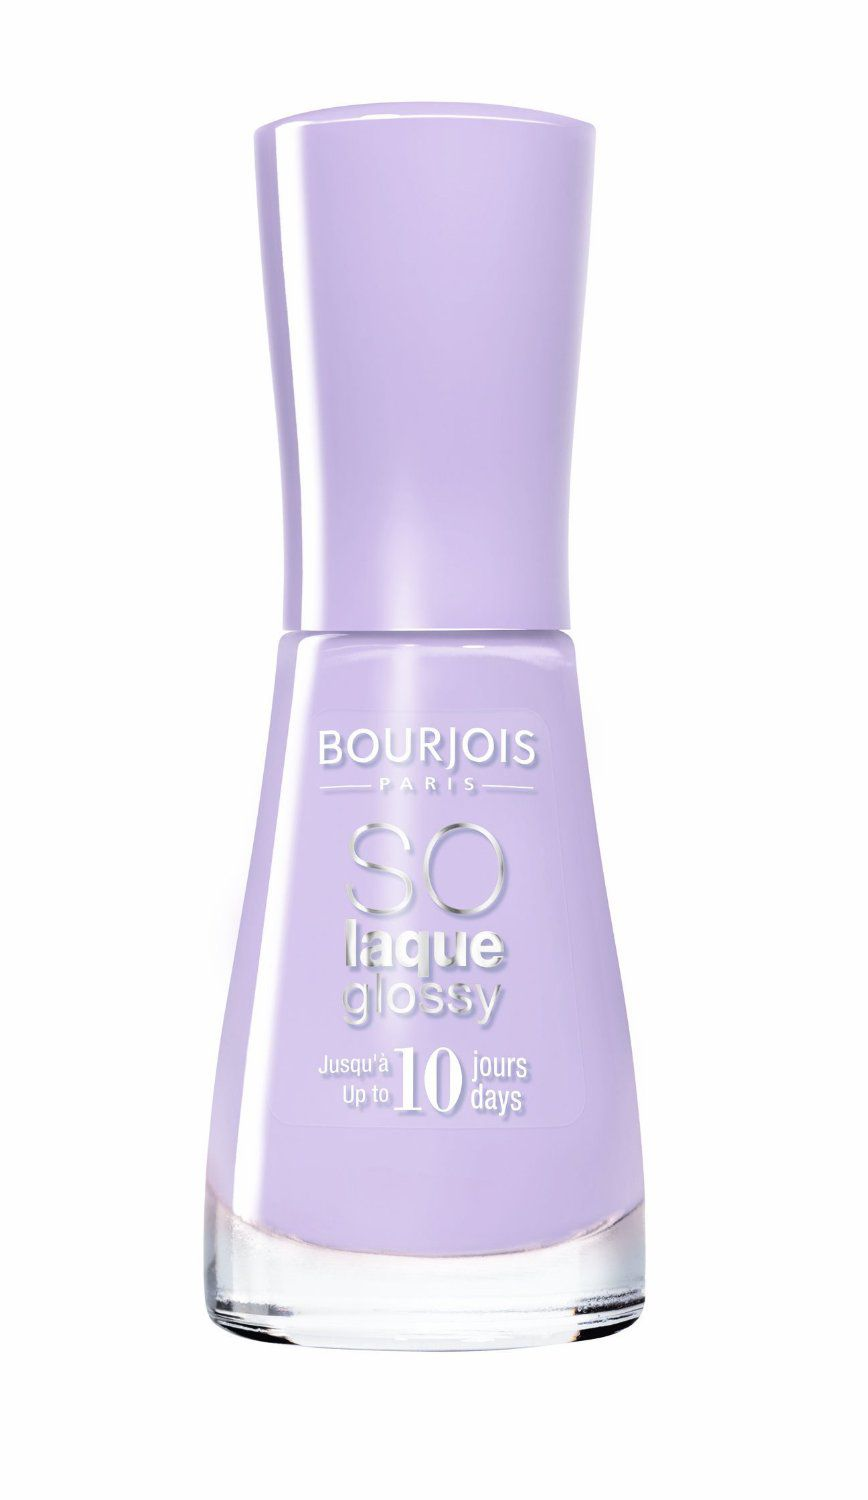 BOURJOIS SO LAQUE SO GLOSSY 15 PEACE AND MAUVE 10